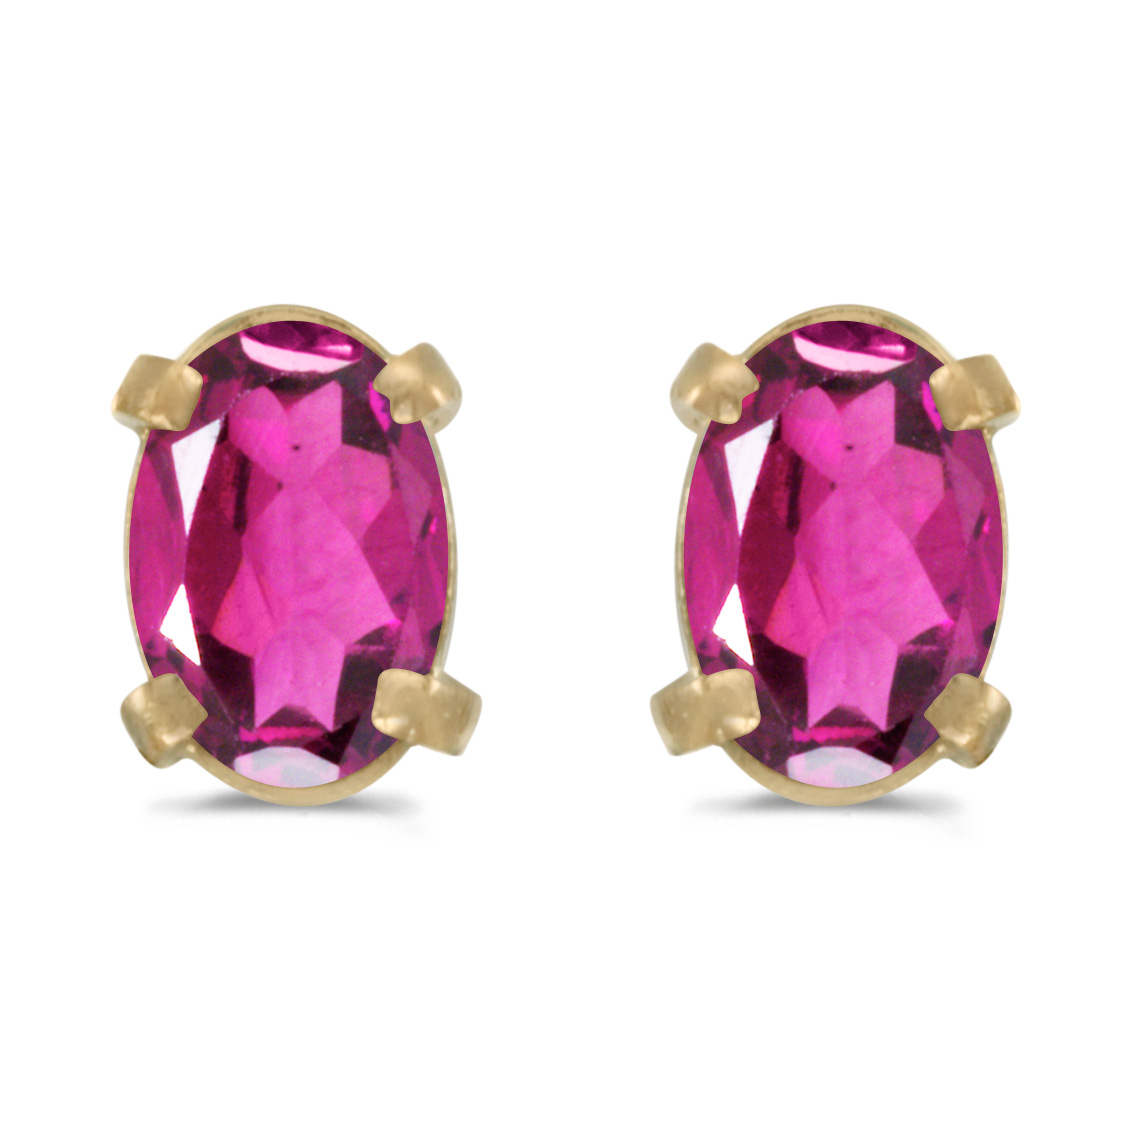 14k Yellow Gold Oval Pink Topaz Earrings by